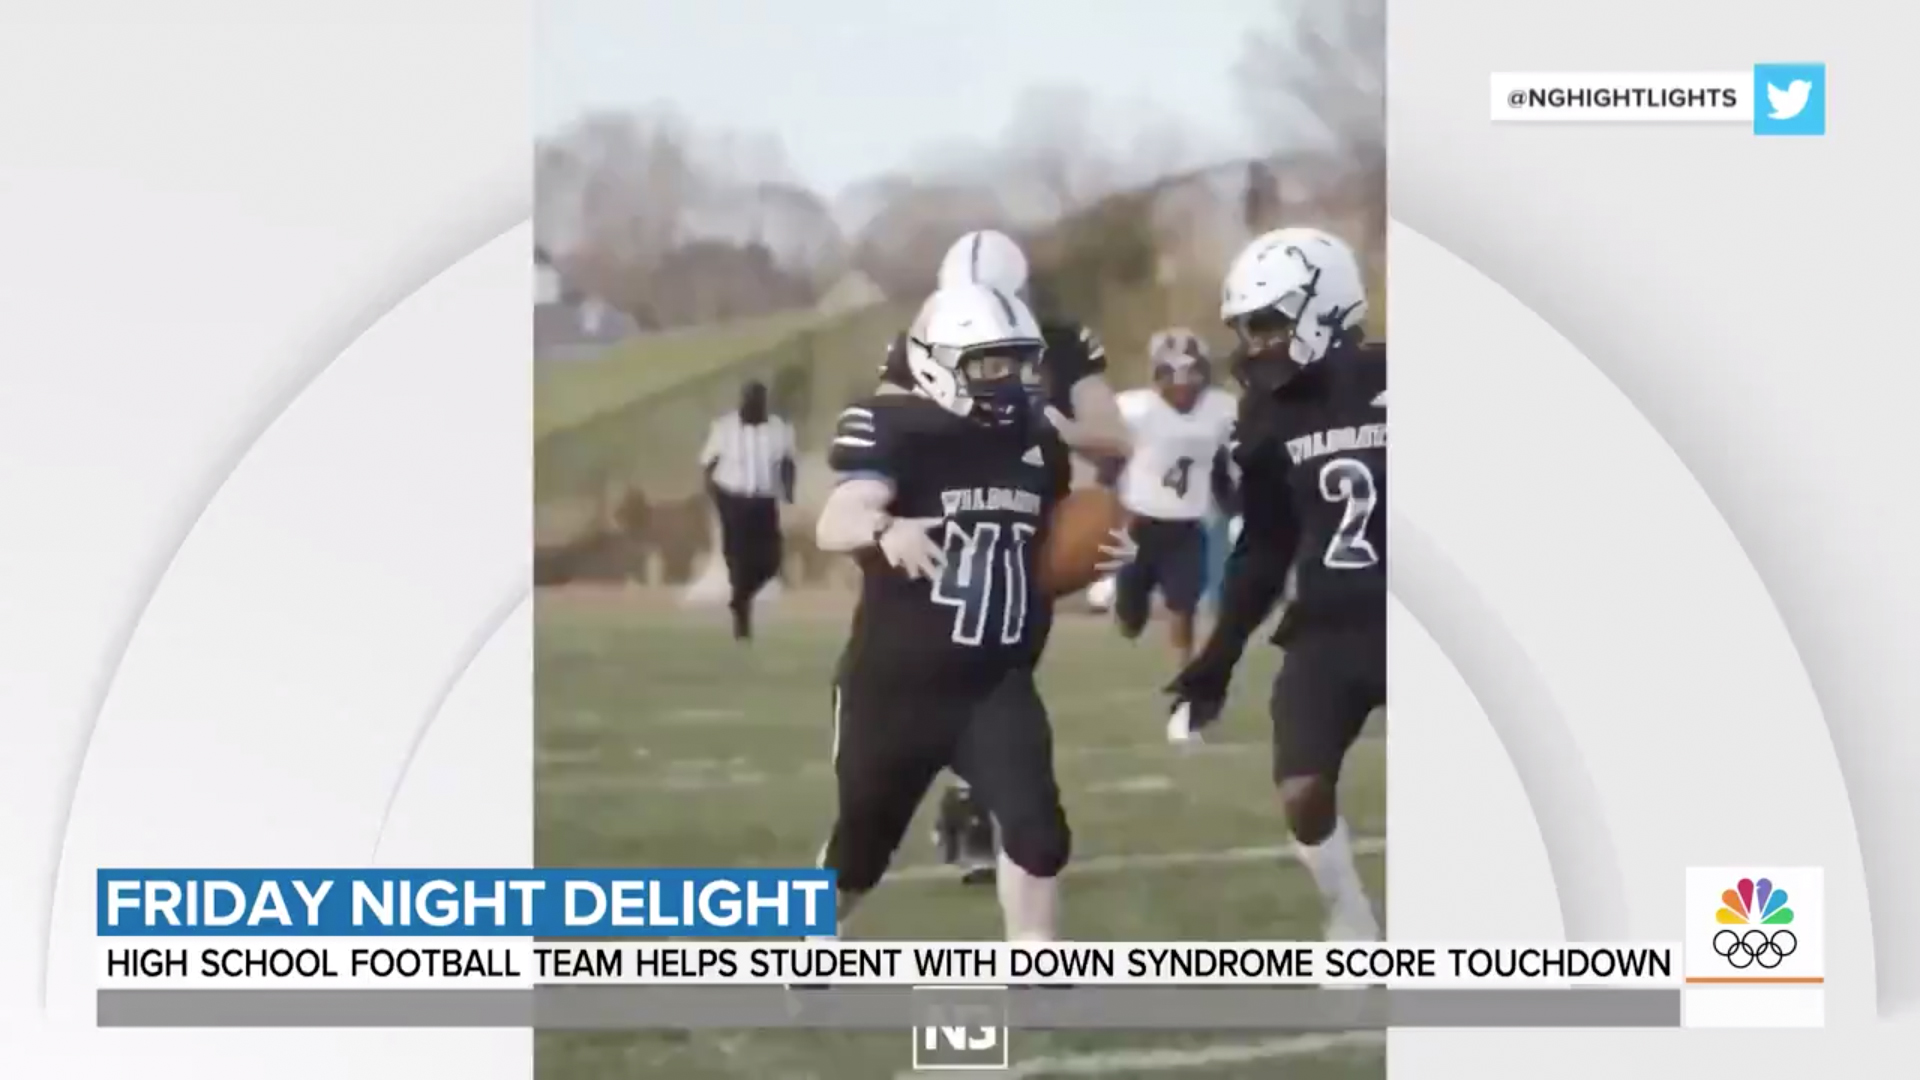 Sam Jordan, who has Down syndrome, and his parents join us to talk about the touchdown he scored at Lake Norman High School in North Carolina on senior night.